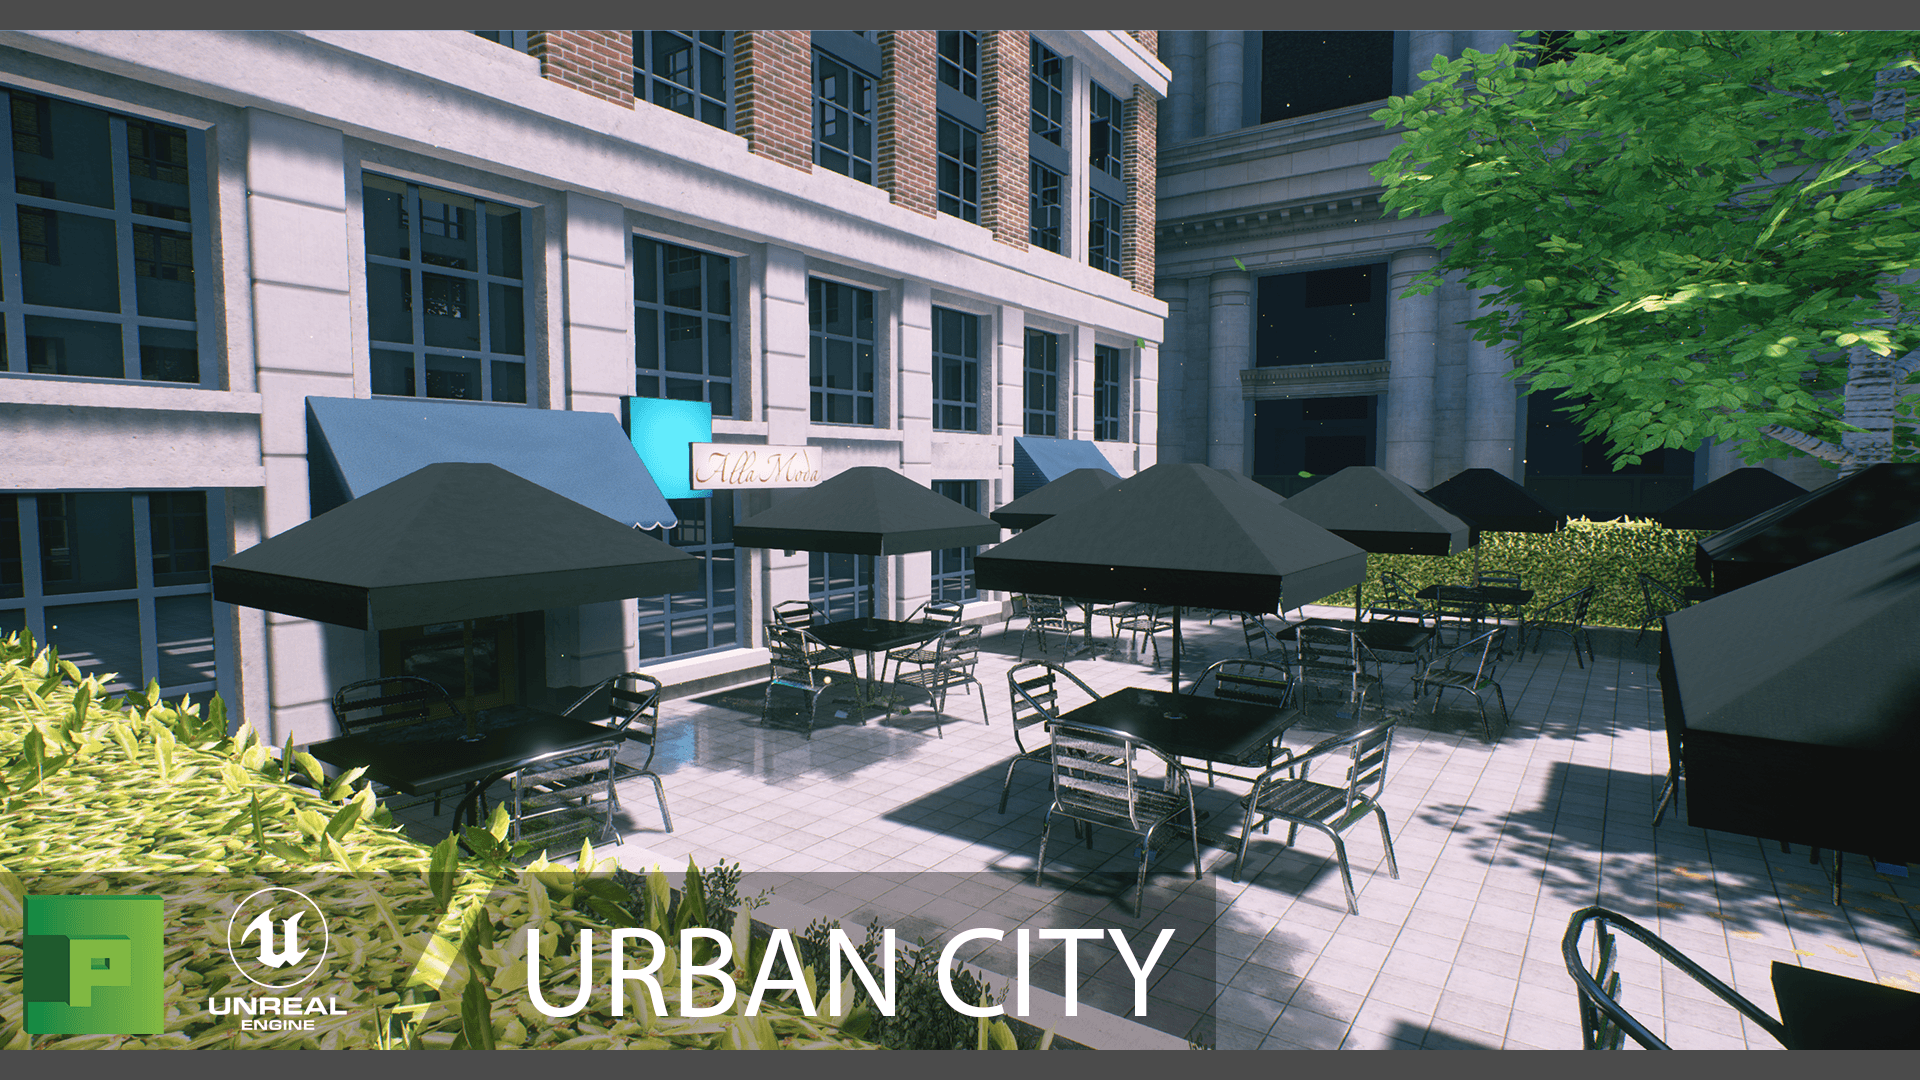 Urban City by PolyPixel in Environments - UE4 Marketplace